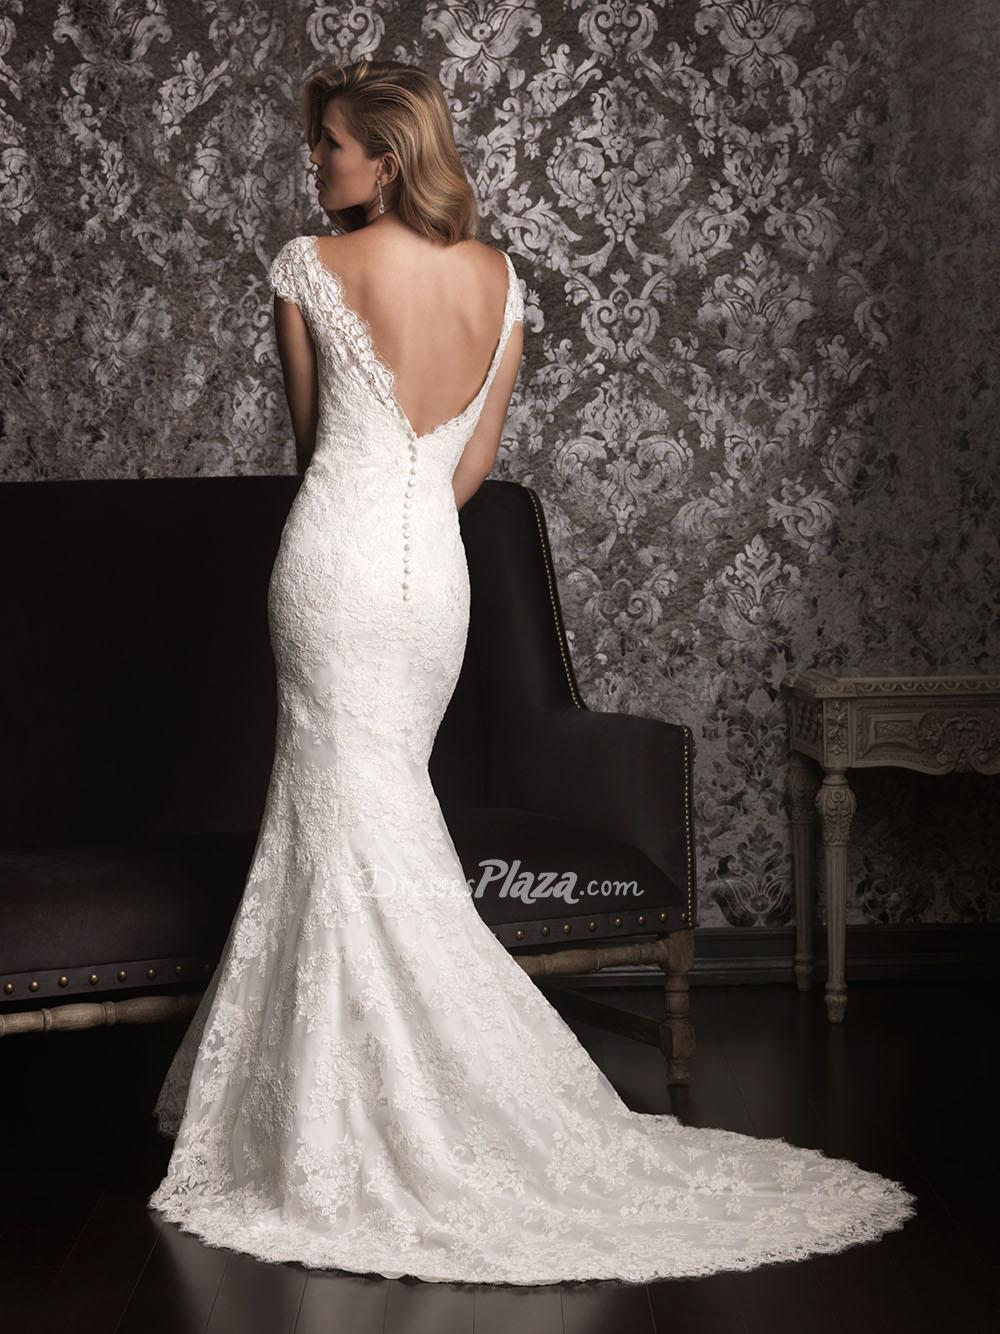 Form fitting wedding dresses with sleeves 2014 2015 for What to wear to a wedding dress fitting